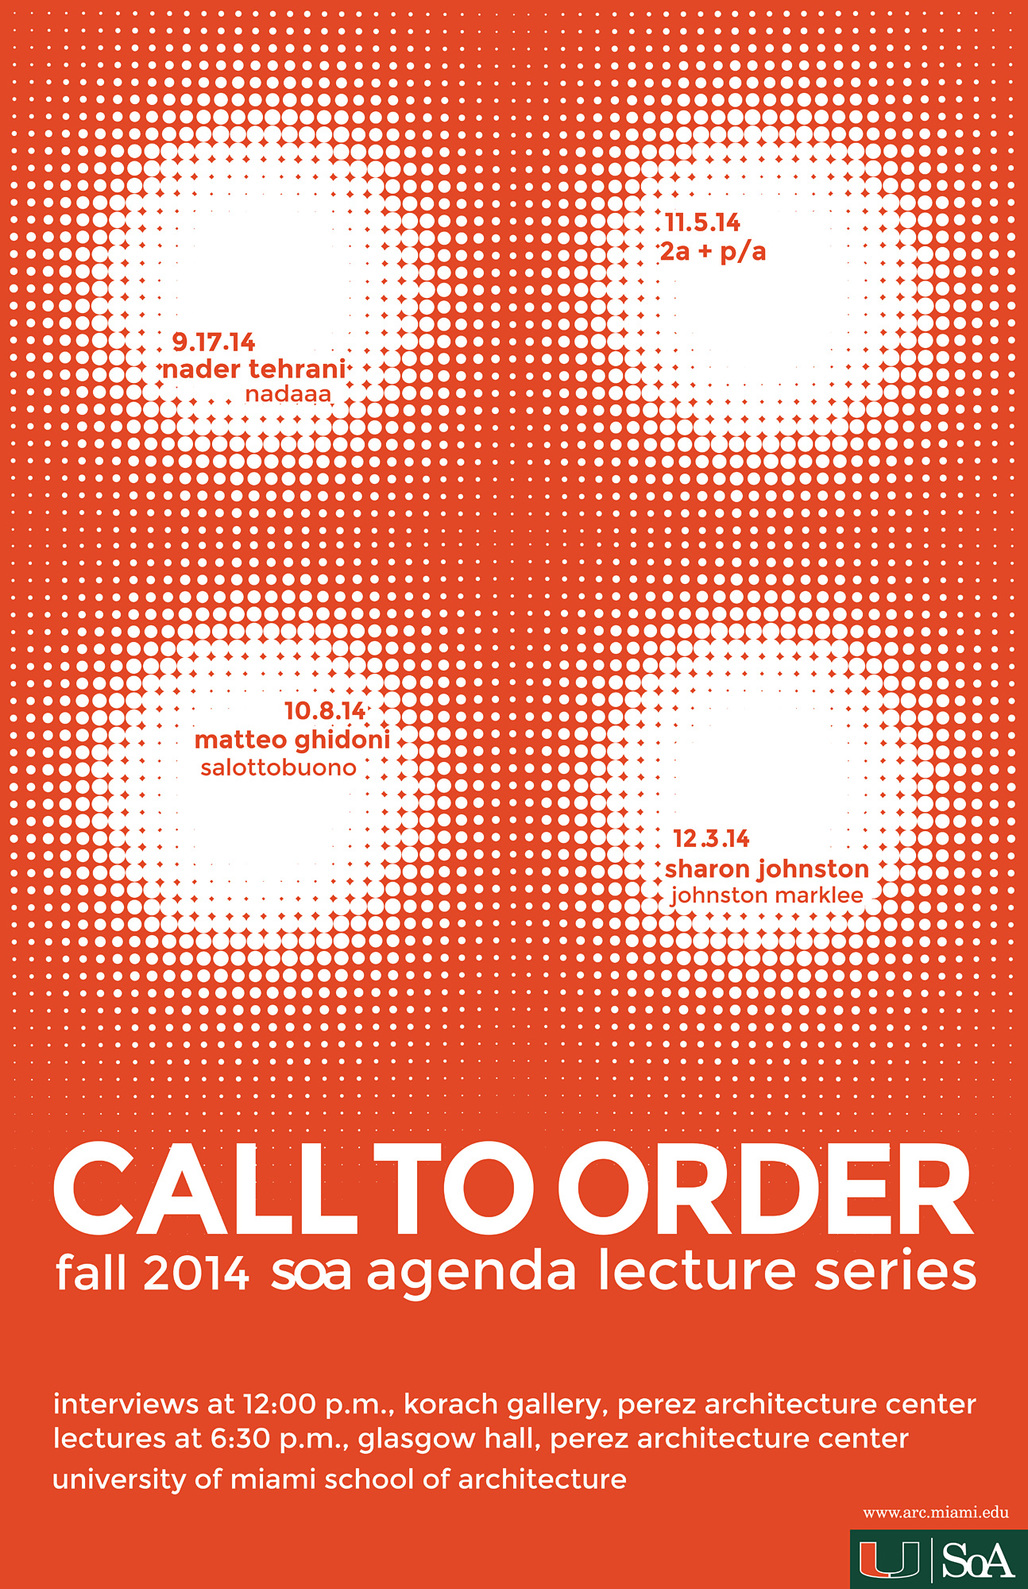 """Call to Order"" - Fall '14 Lecture Series at the University of Miami, School of Architecture. Image courtesy of the University of Miami, School of Architecture."